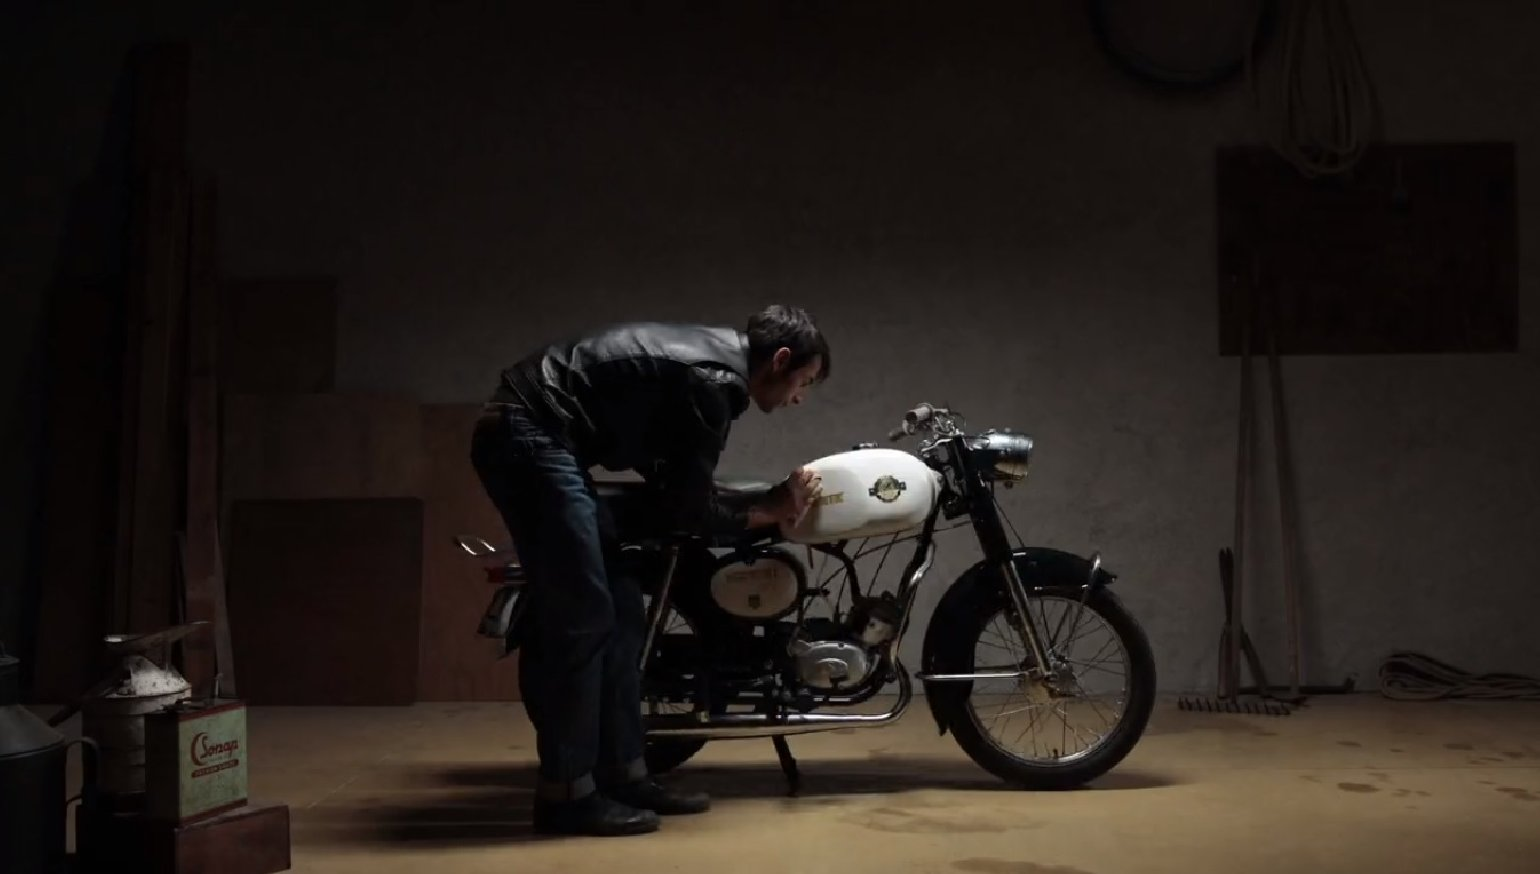 Video: A stop-motion journey through an amazing motorcycle collection